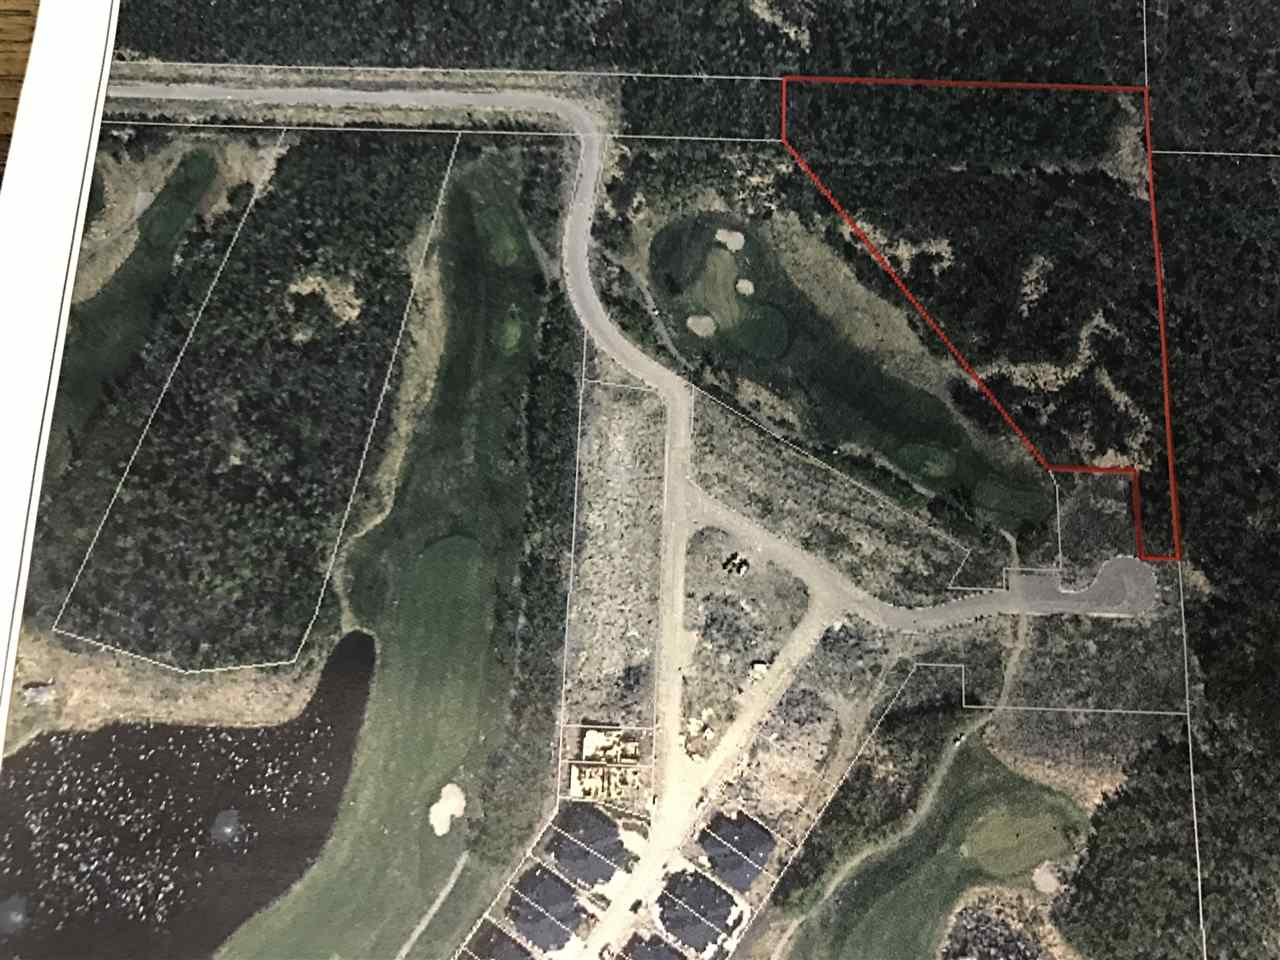 This is a 5.09 acre lot. Treed. Backing Northern Bear Golf Course. Northern Bear has recently been purchased by a new owner and had opened up for a great 2017 season!  The property is at the North East corner of a development that being built as walk out bungalows. It appears to be zoned for the same use and is on the same road and in proximity to the same water and sewer services. However, this is a foreclosure listing and there will be no warranties as to: usage, services, road access, whether is sub dividable, etc. This research will be entirely up to the buyer. Schedule A must accompany offer. All deposits to be certified / bank draft. Happy researching!